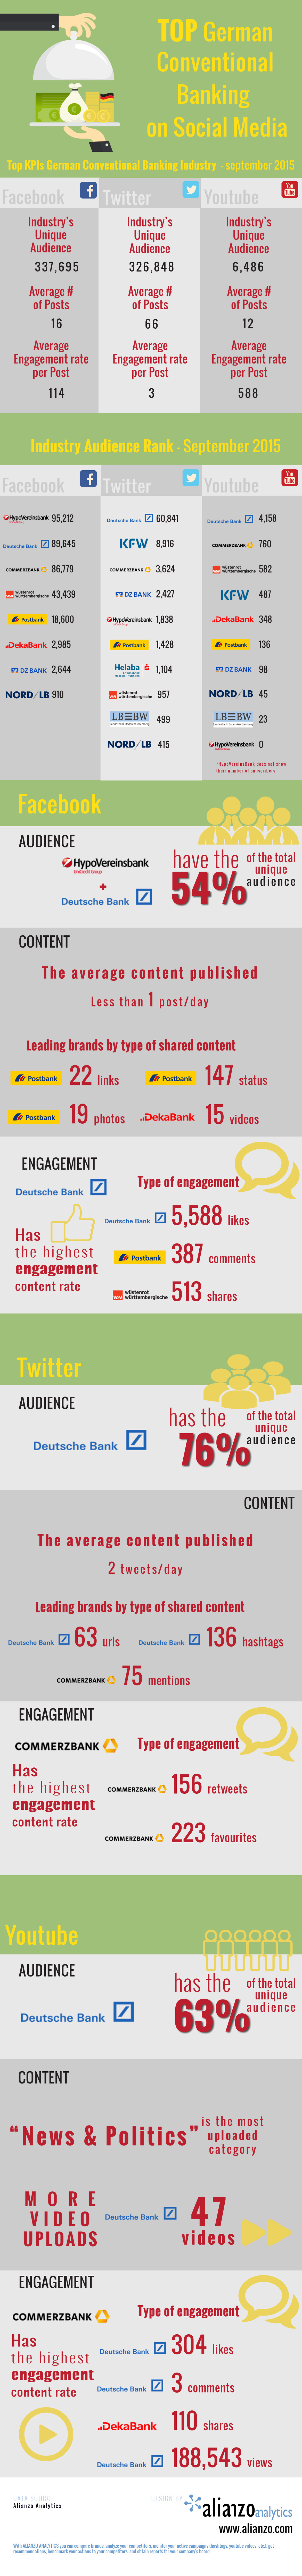 German Banking Report On Social Media Commerzbank Wins On Twitter And Youtube With Its Contents